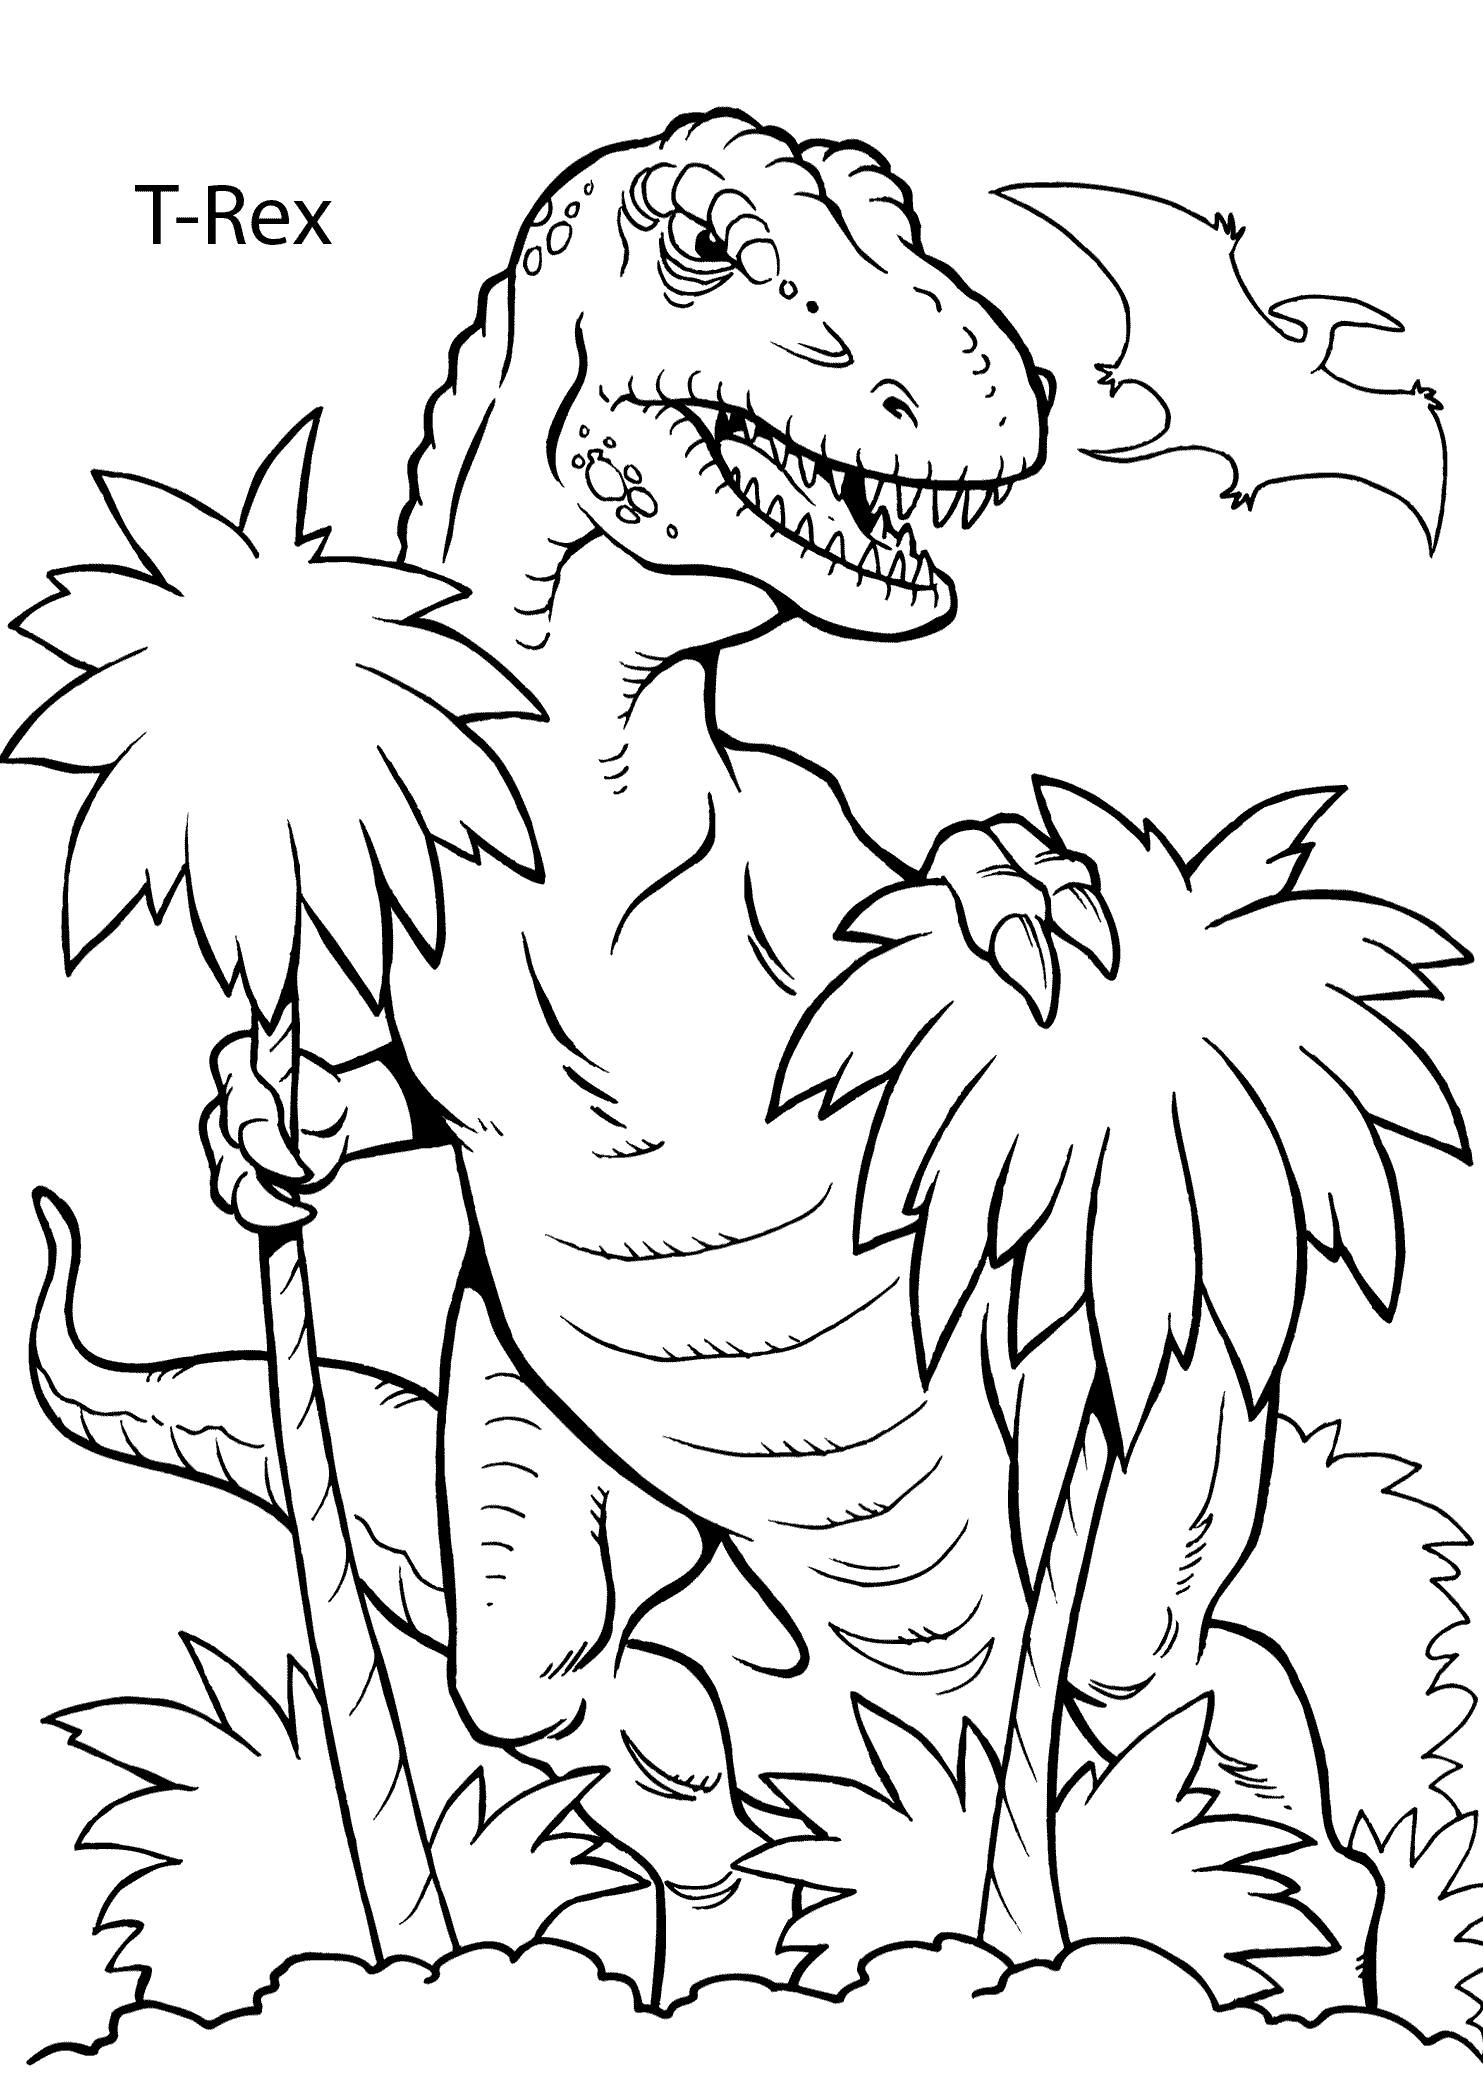 T Rex Coloring Pages  Collection 10b - To print for your project